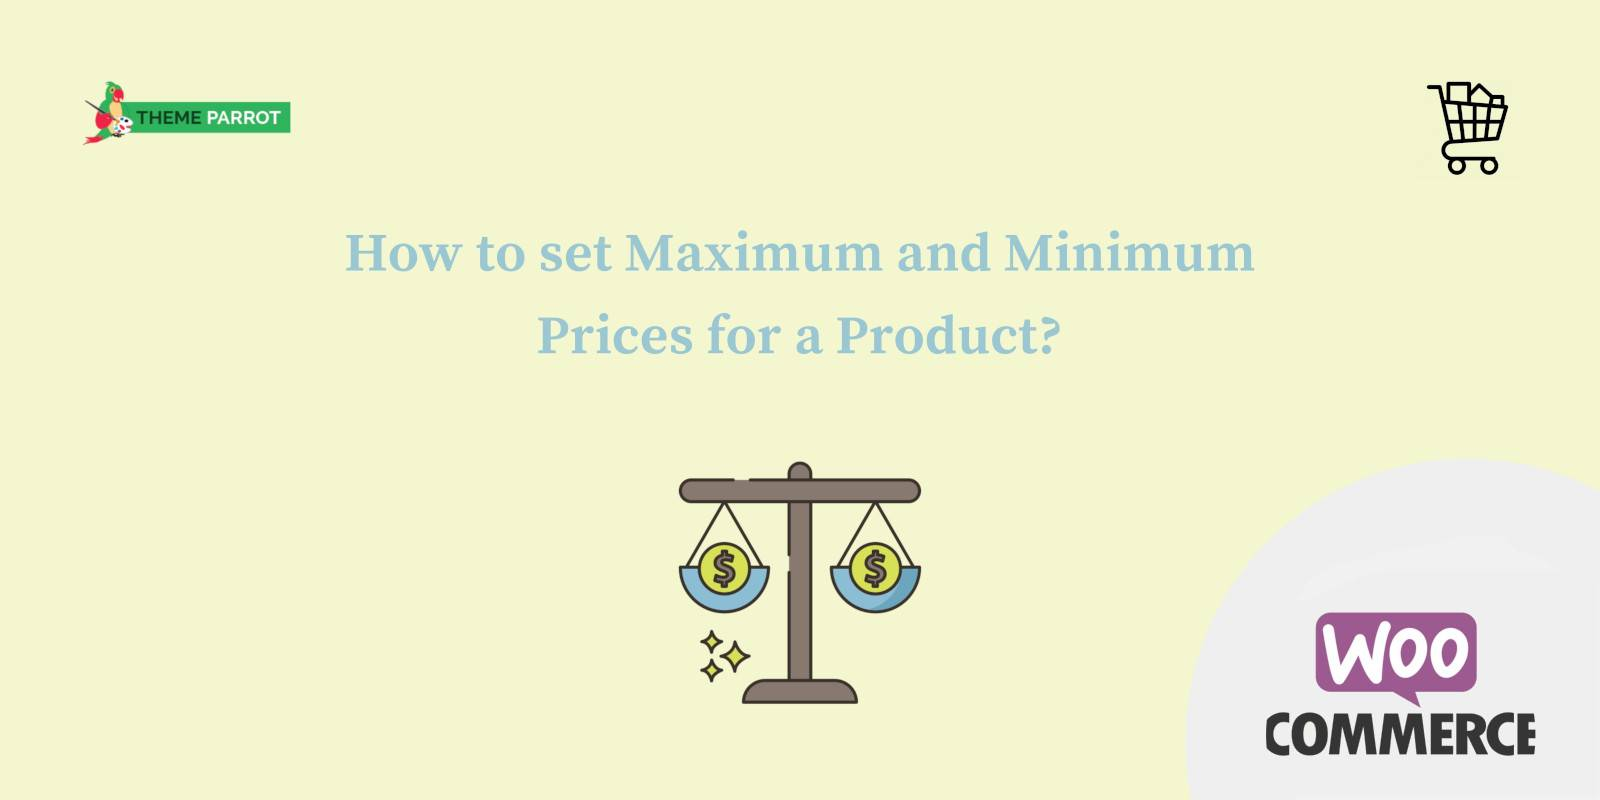 how to set maximum and minimum prices for a product